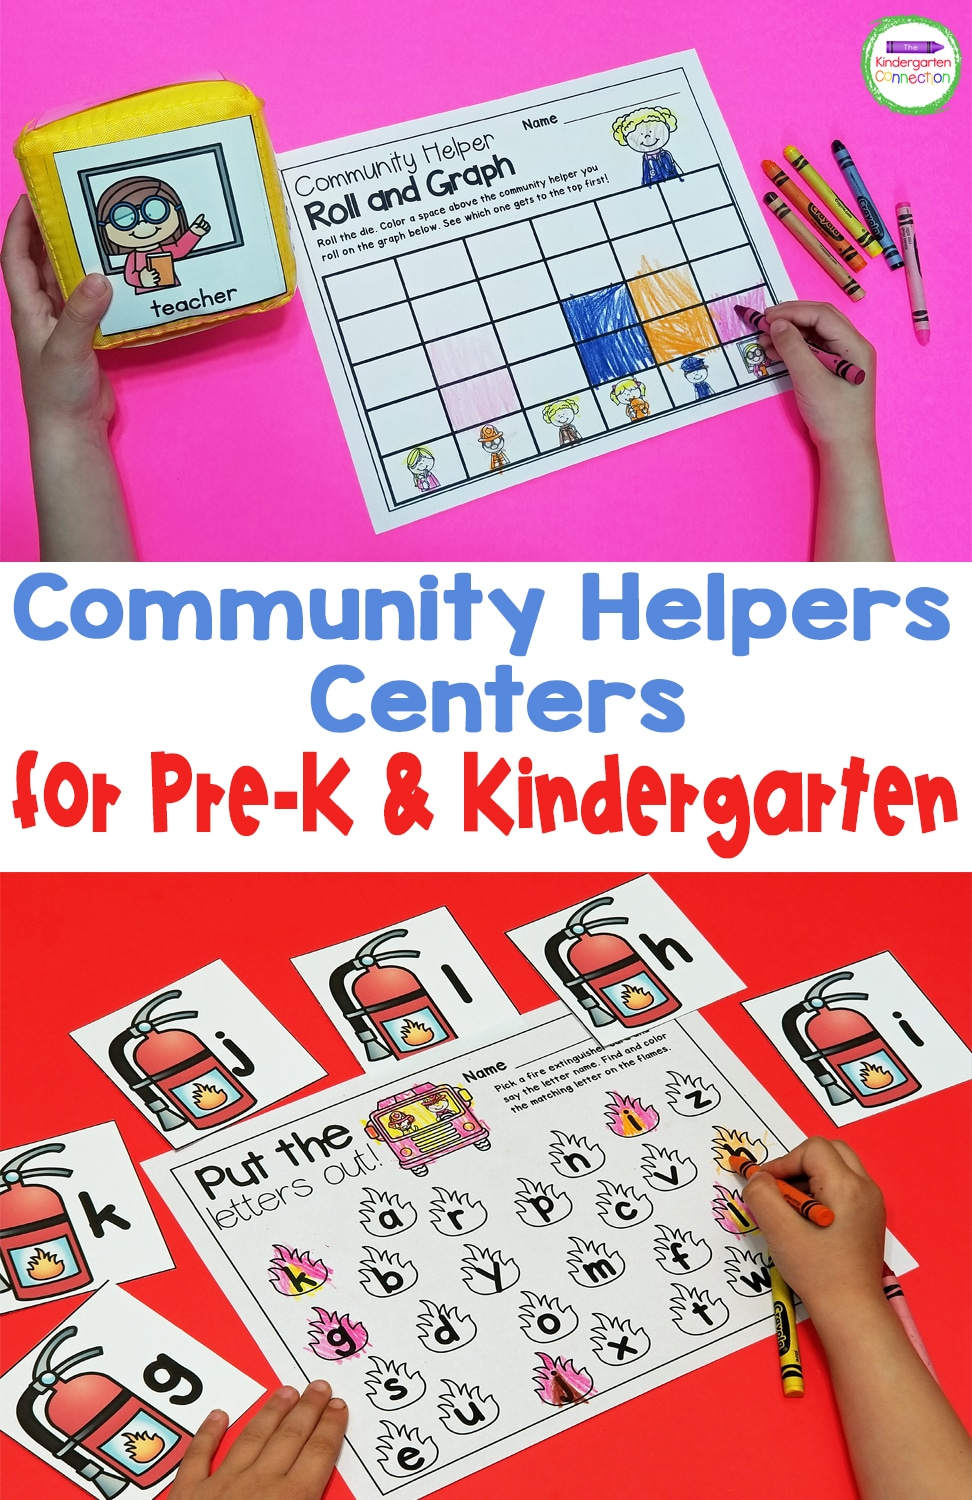 These Community Helpers Activities and Centers for Pre-K & Kindergarten are perfect for strengthening math and literacy skills while learning about community helpers!